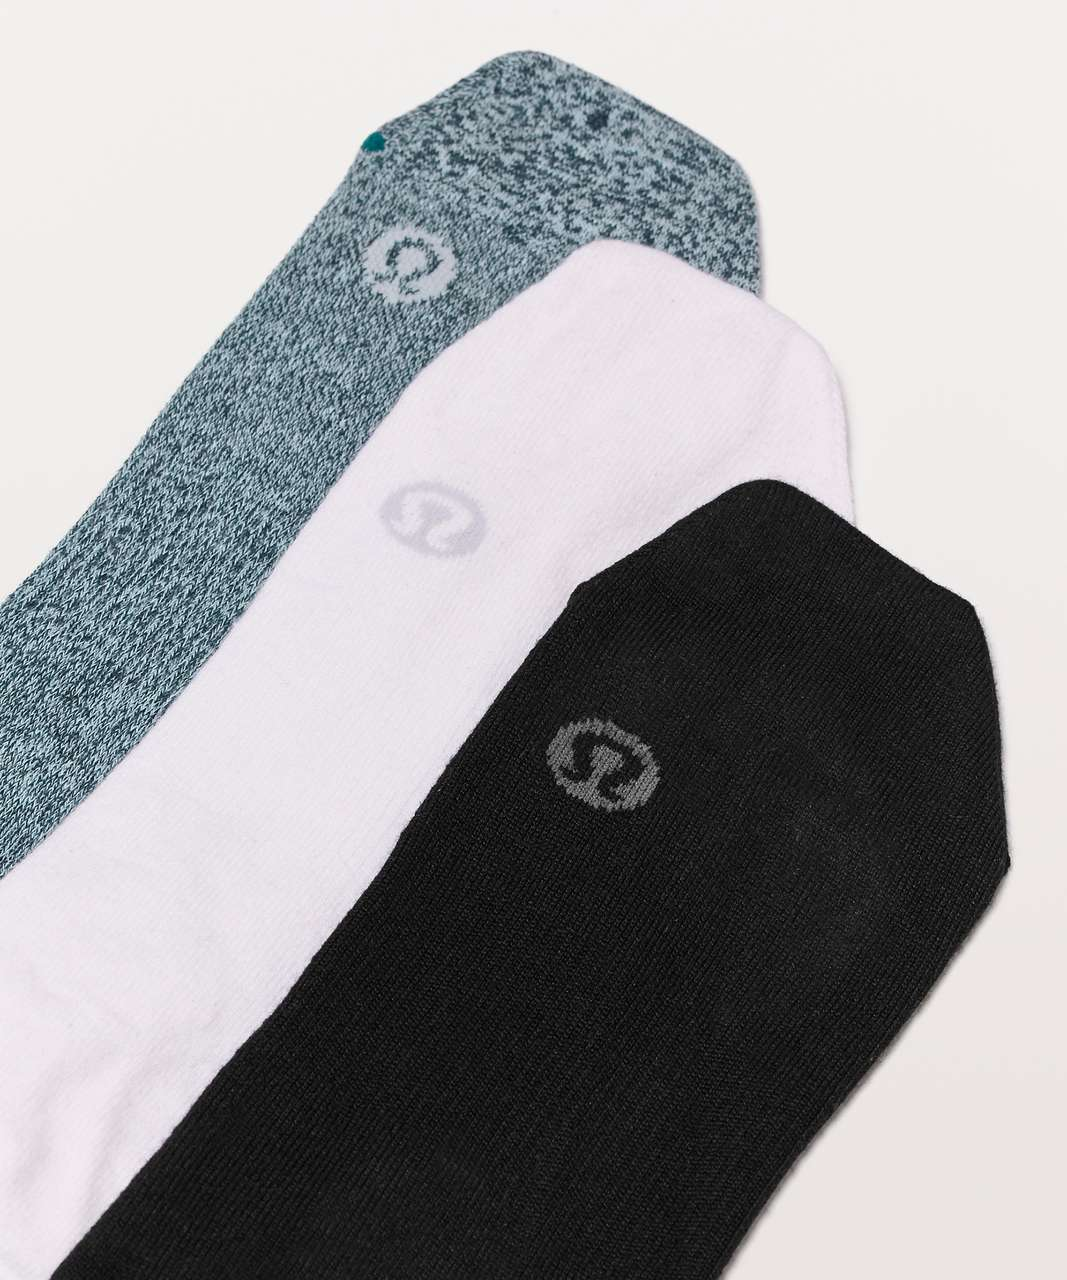 Lululemon All In A Day Sock 3 Pack - Black / White / Heathered True Navy